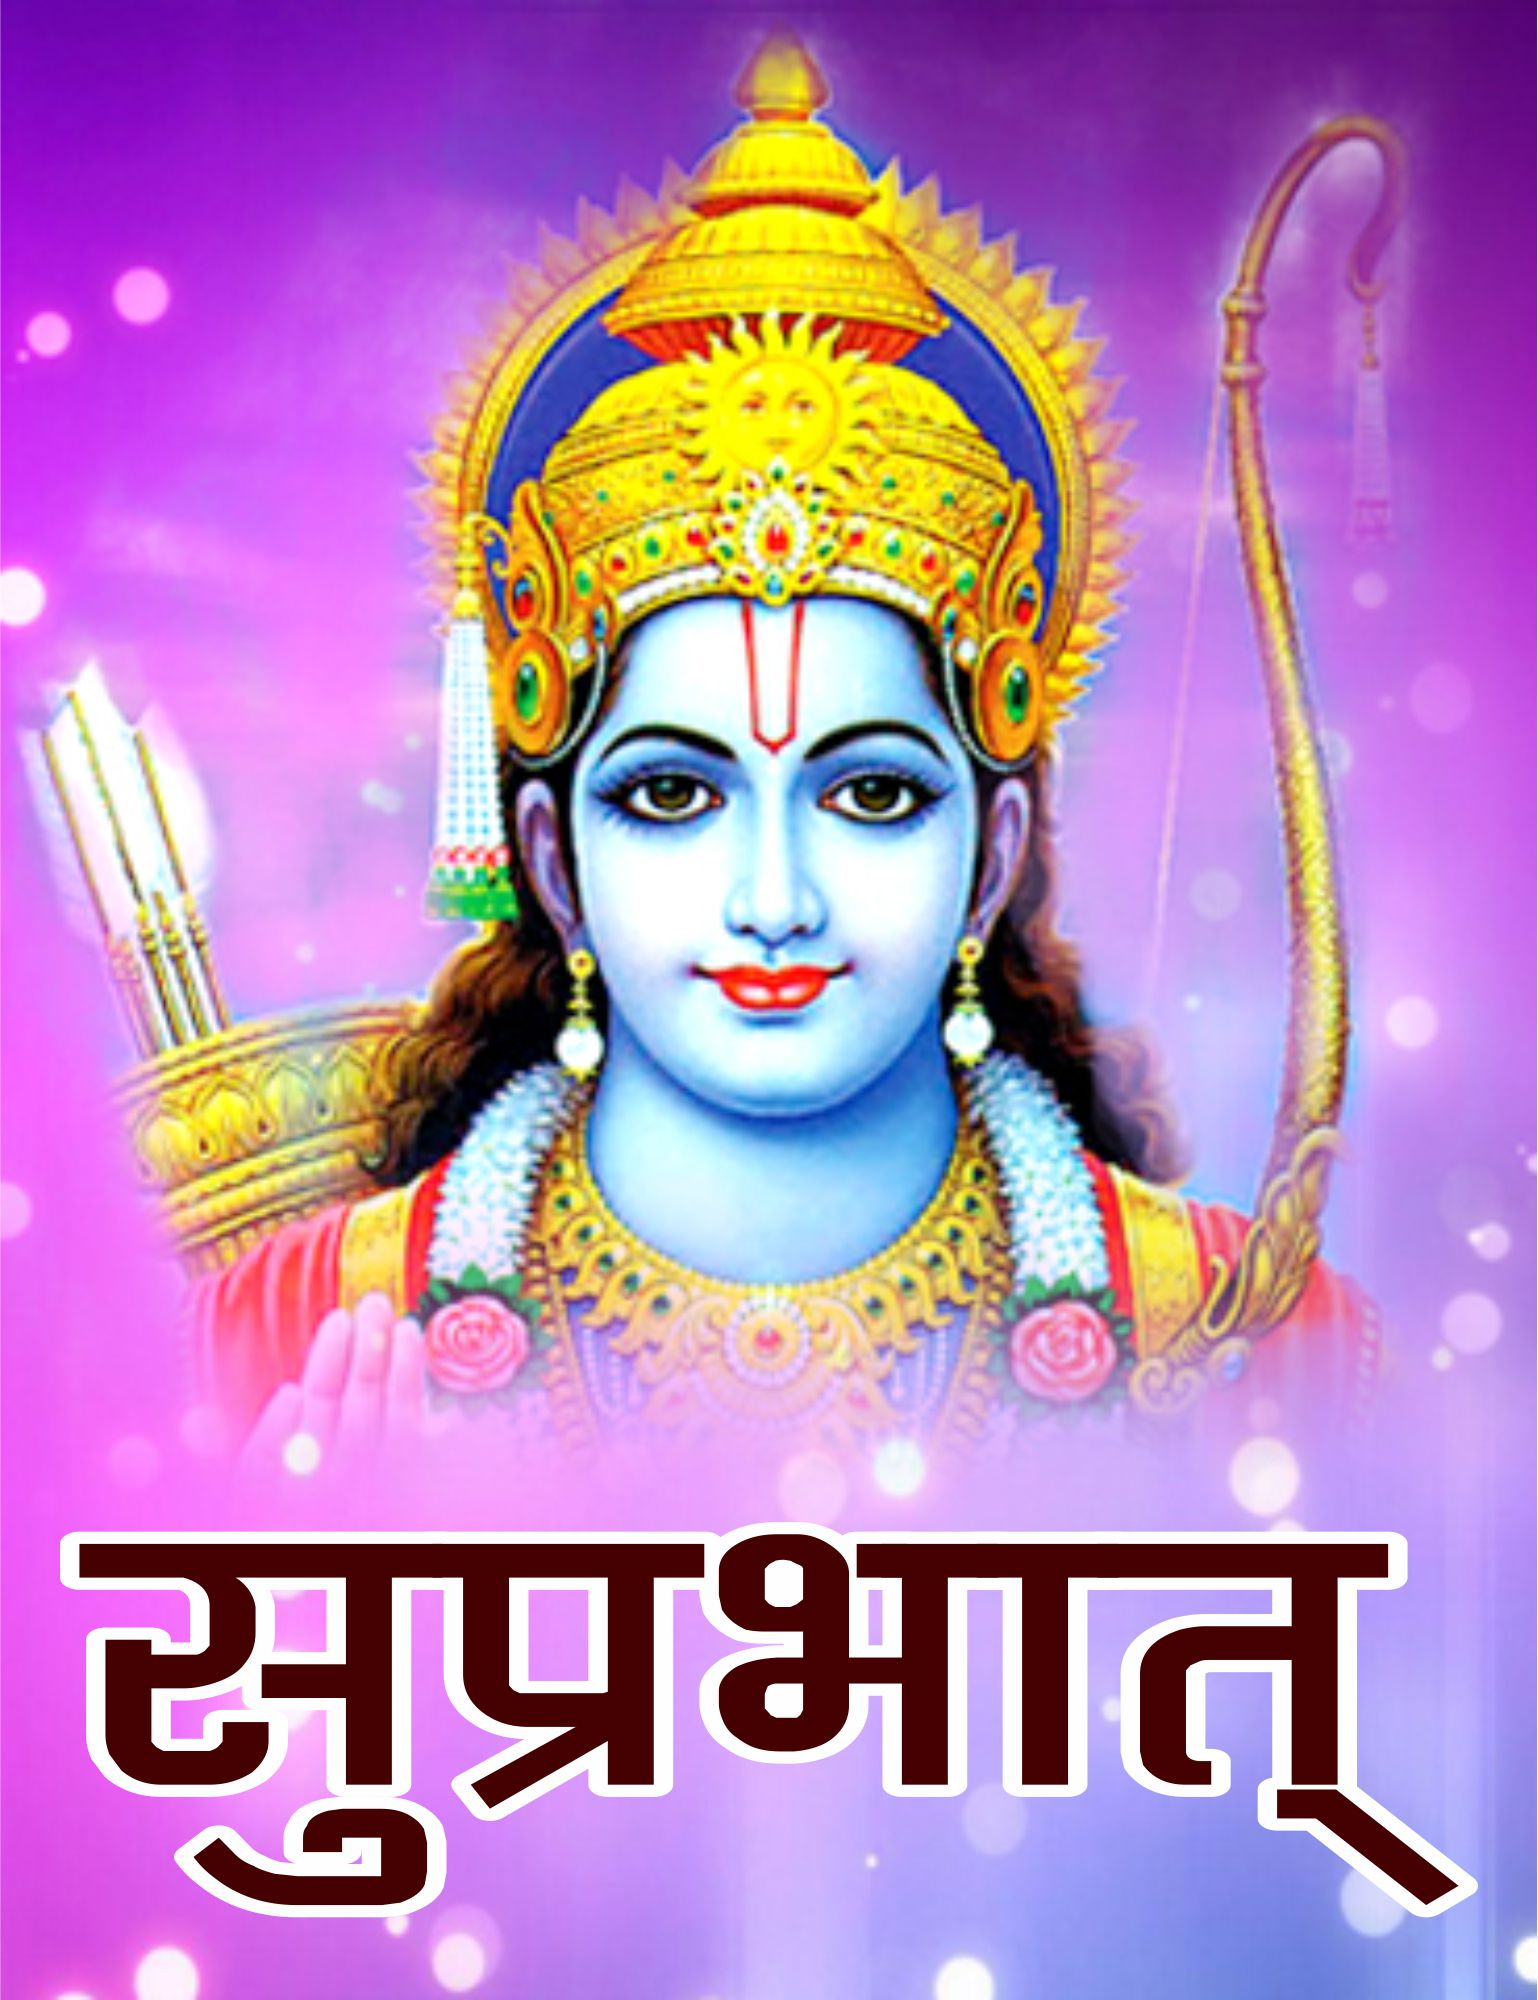 bhagwan shree ram morning wishes free download images